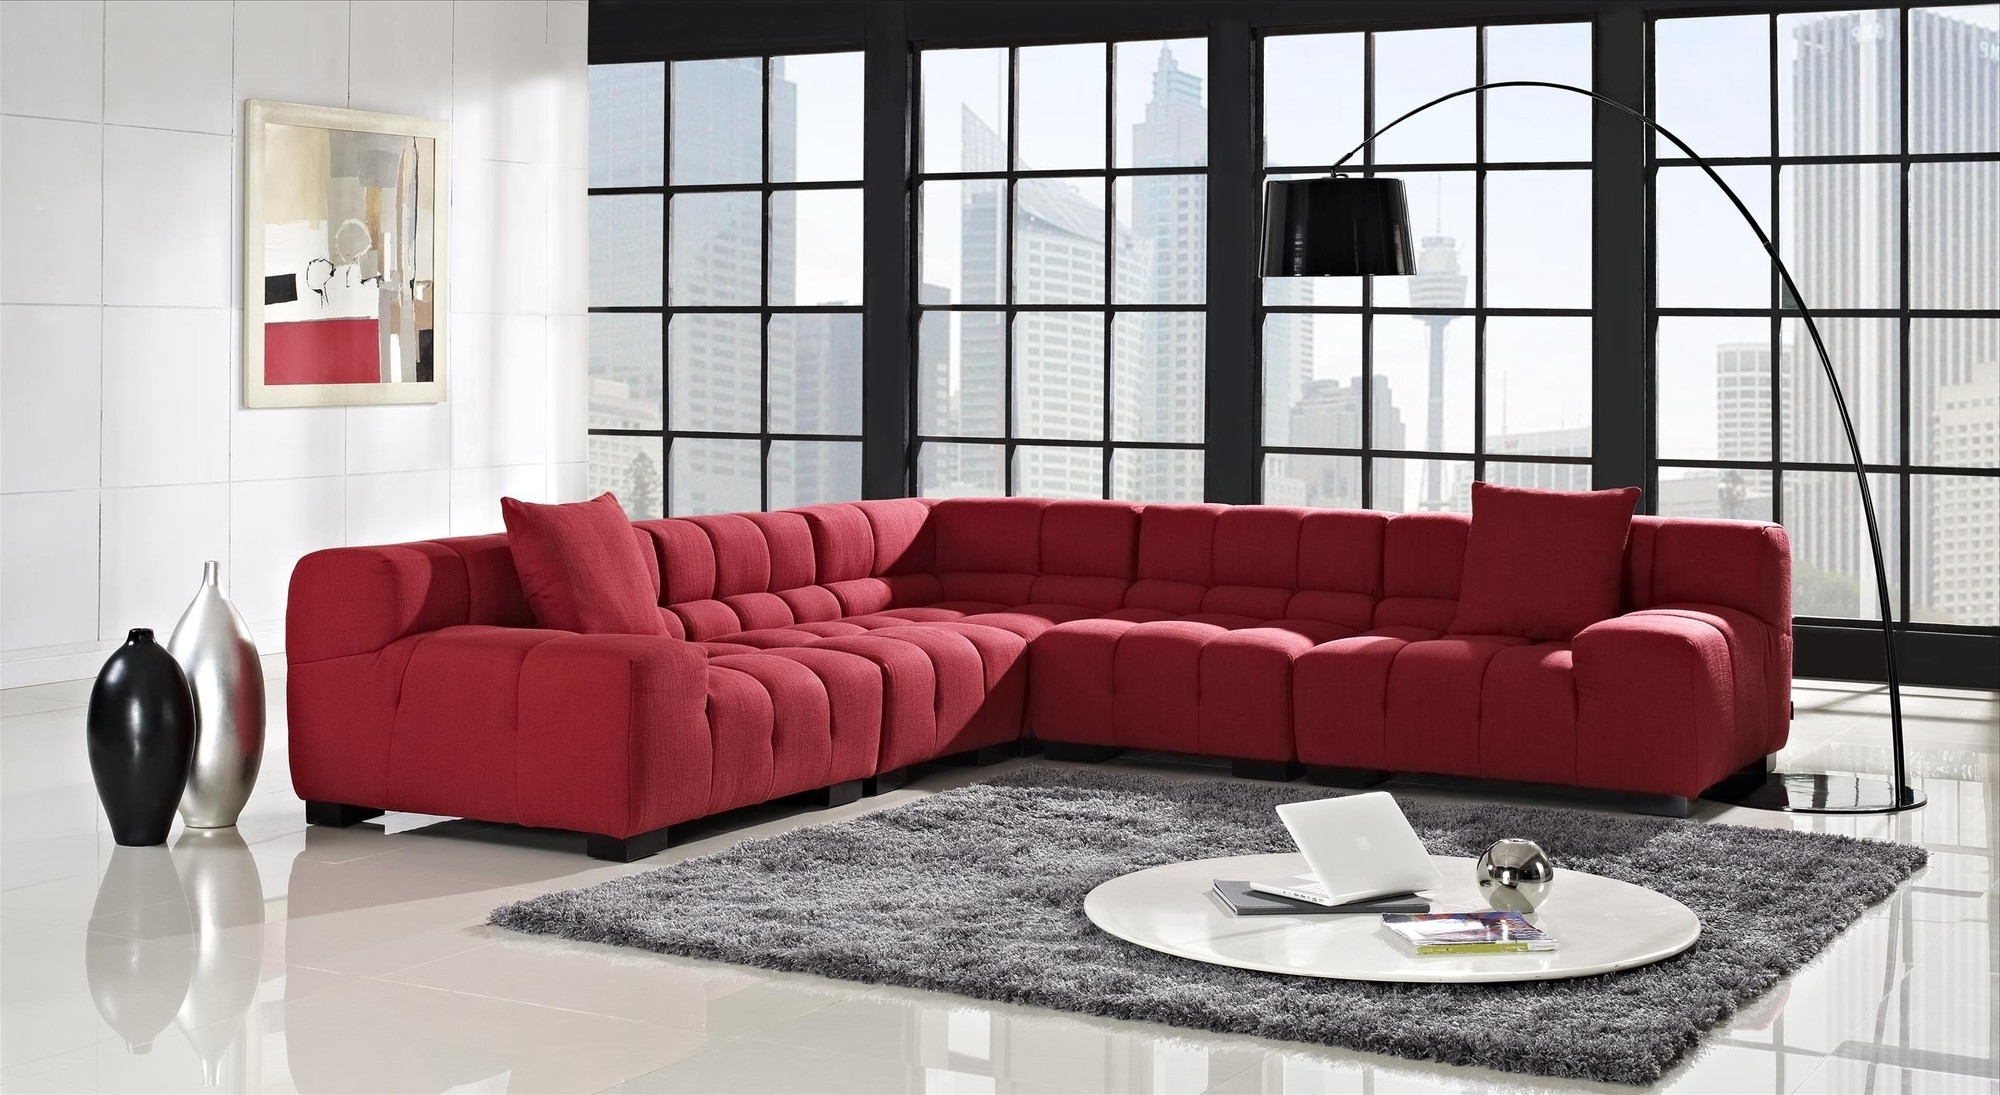 Beautiful Best Modern Sectional Sofa 18 On Sofas And Couches Ideas With 2018 Modern Sectional Sofas (View 3 of 15)